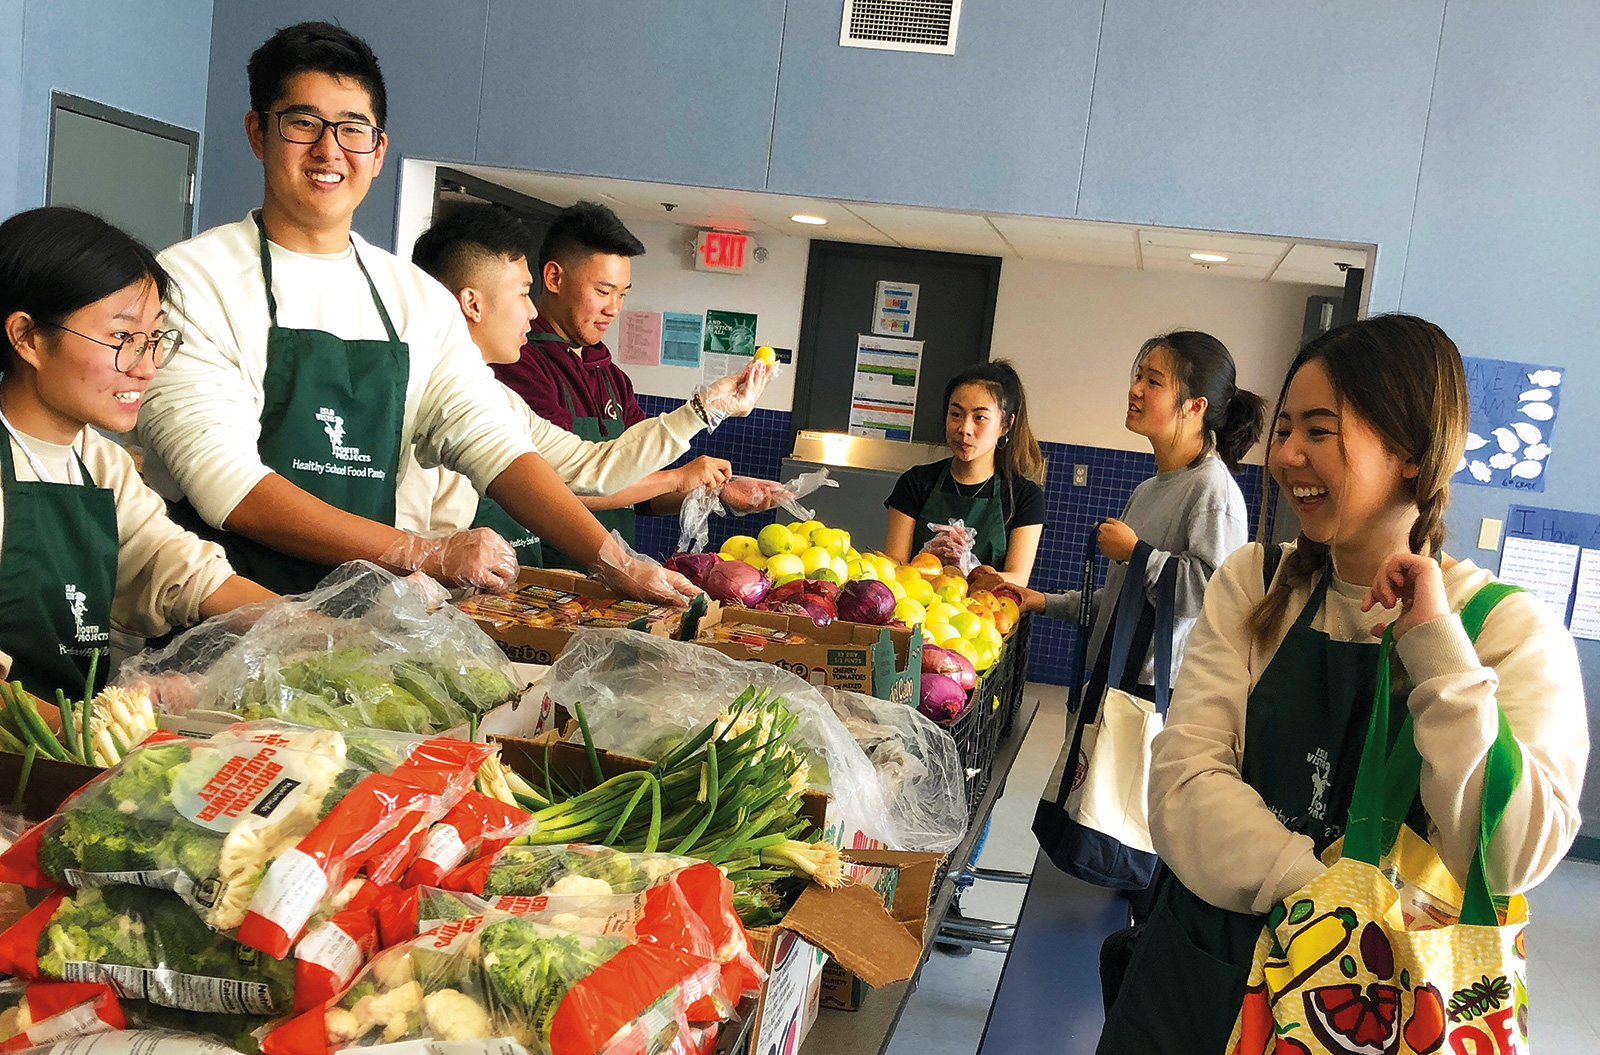 IVYP and Isla Vista Food Co-op partner for community impact